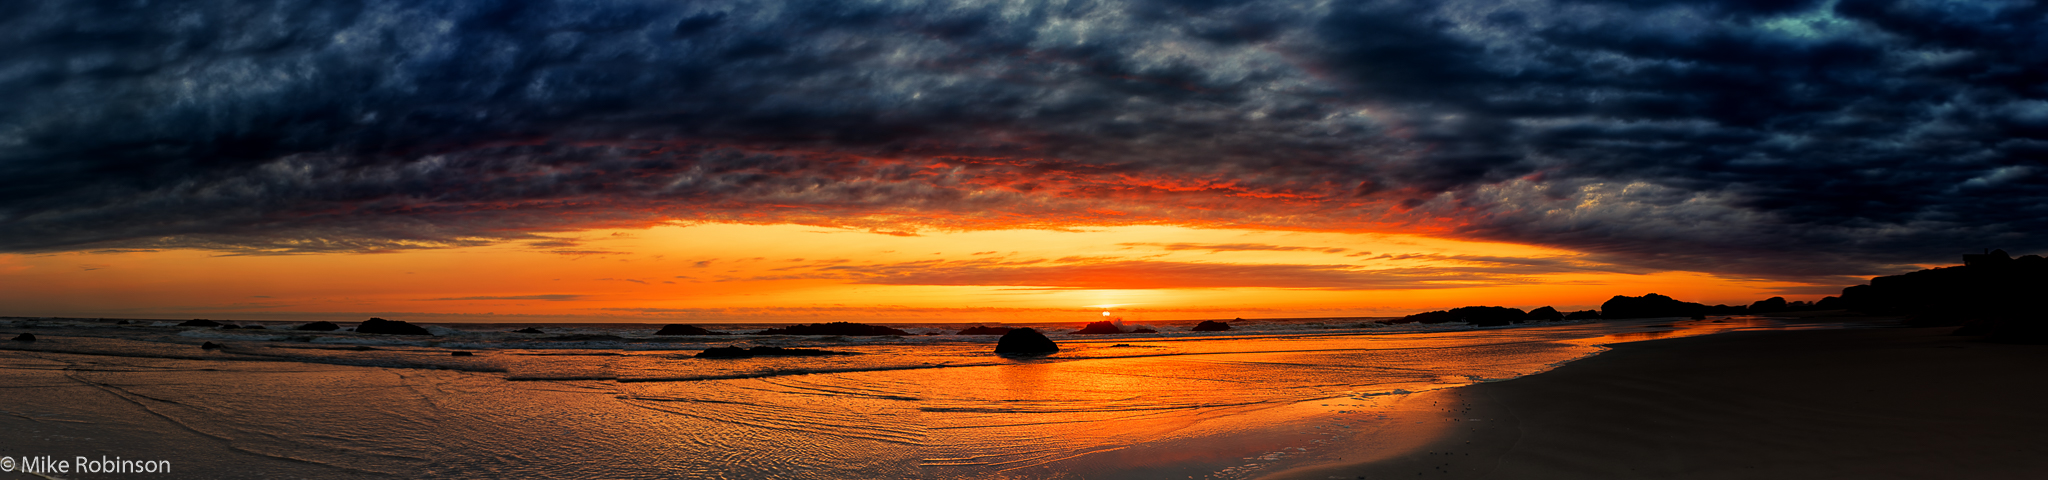 Pano_Seal_Rock_Beach_Sunset_6